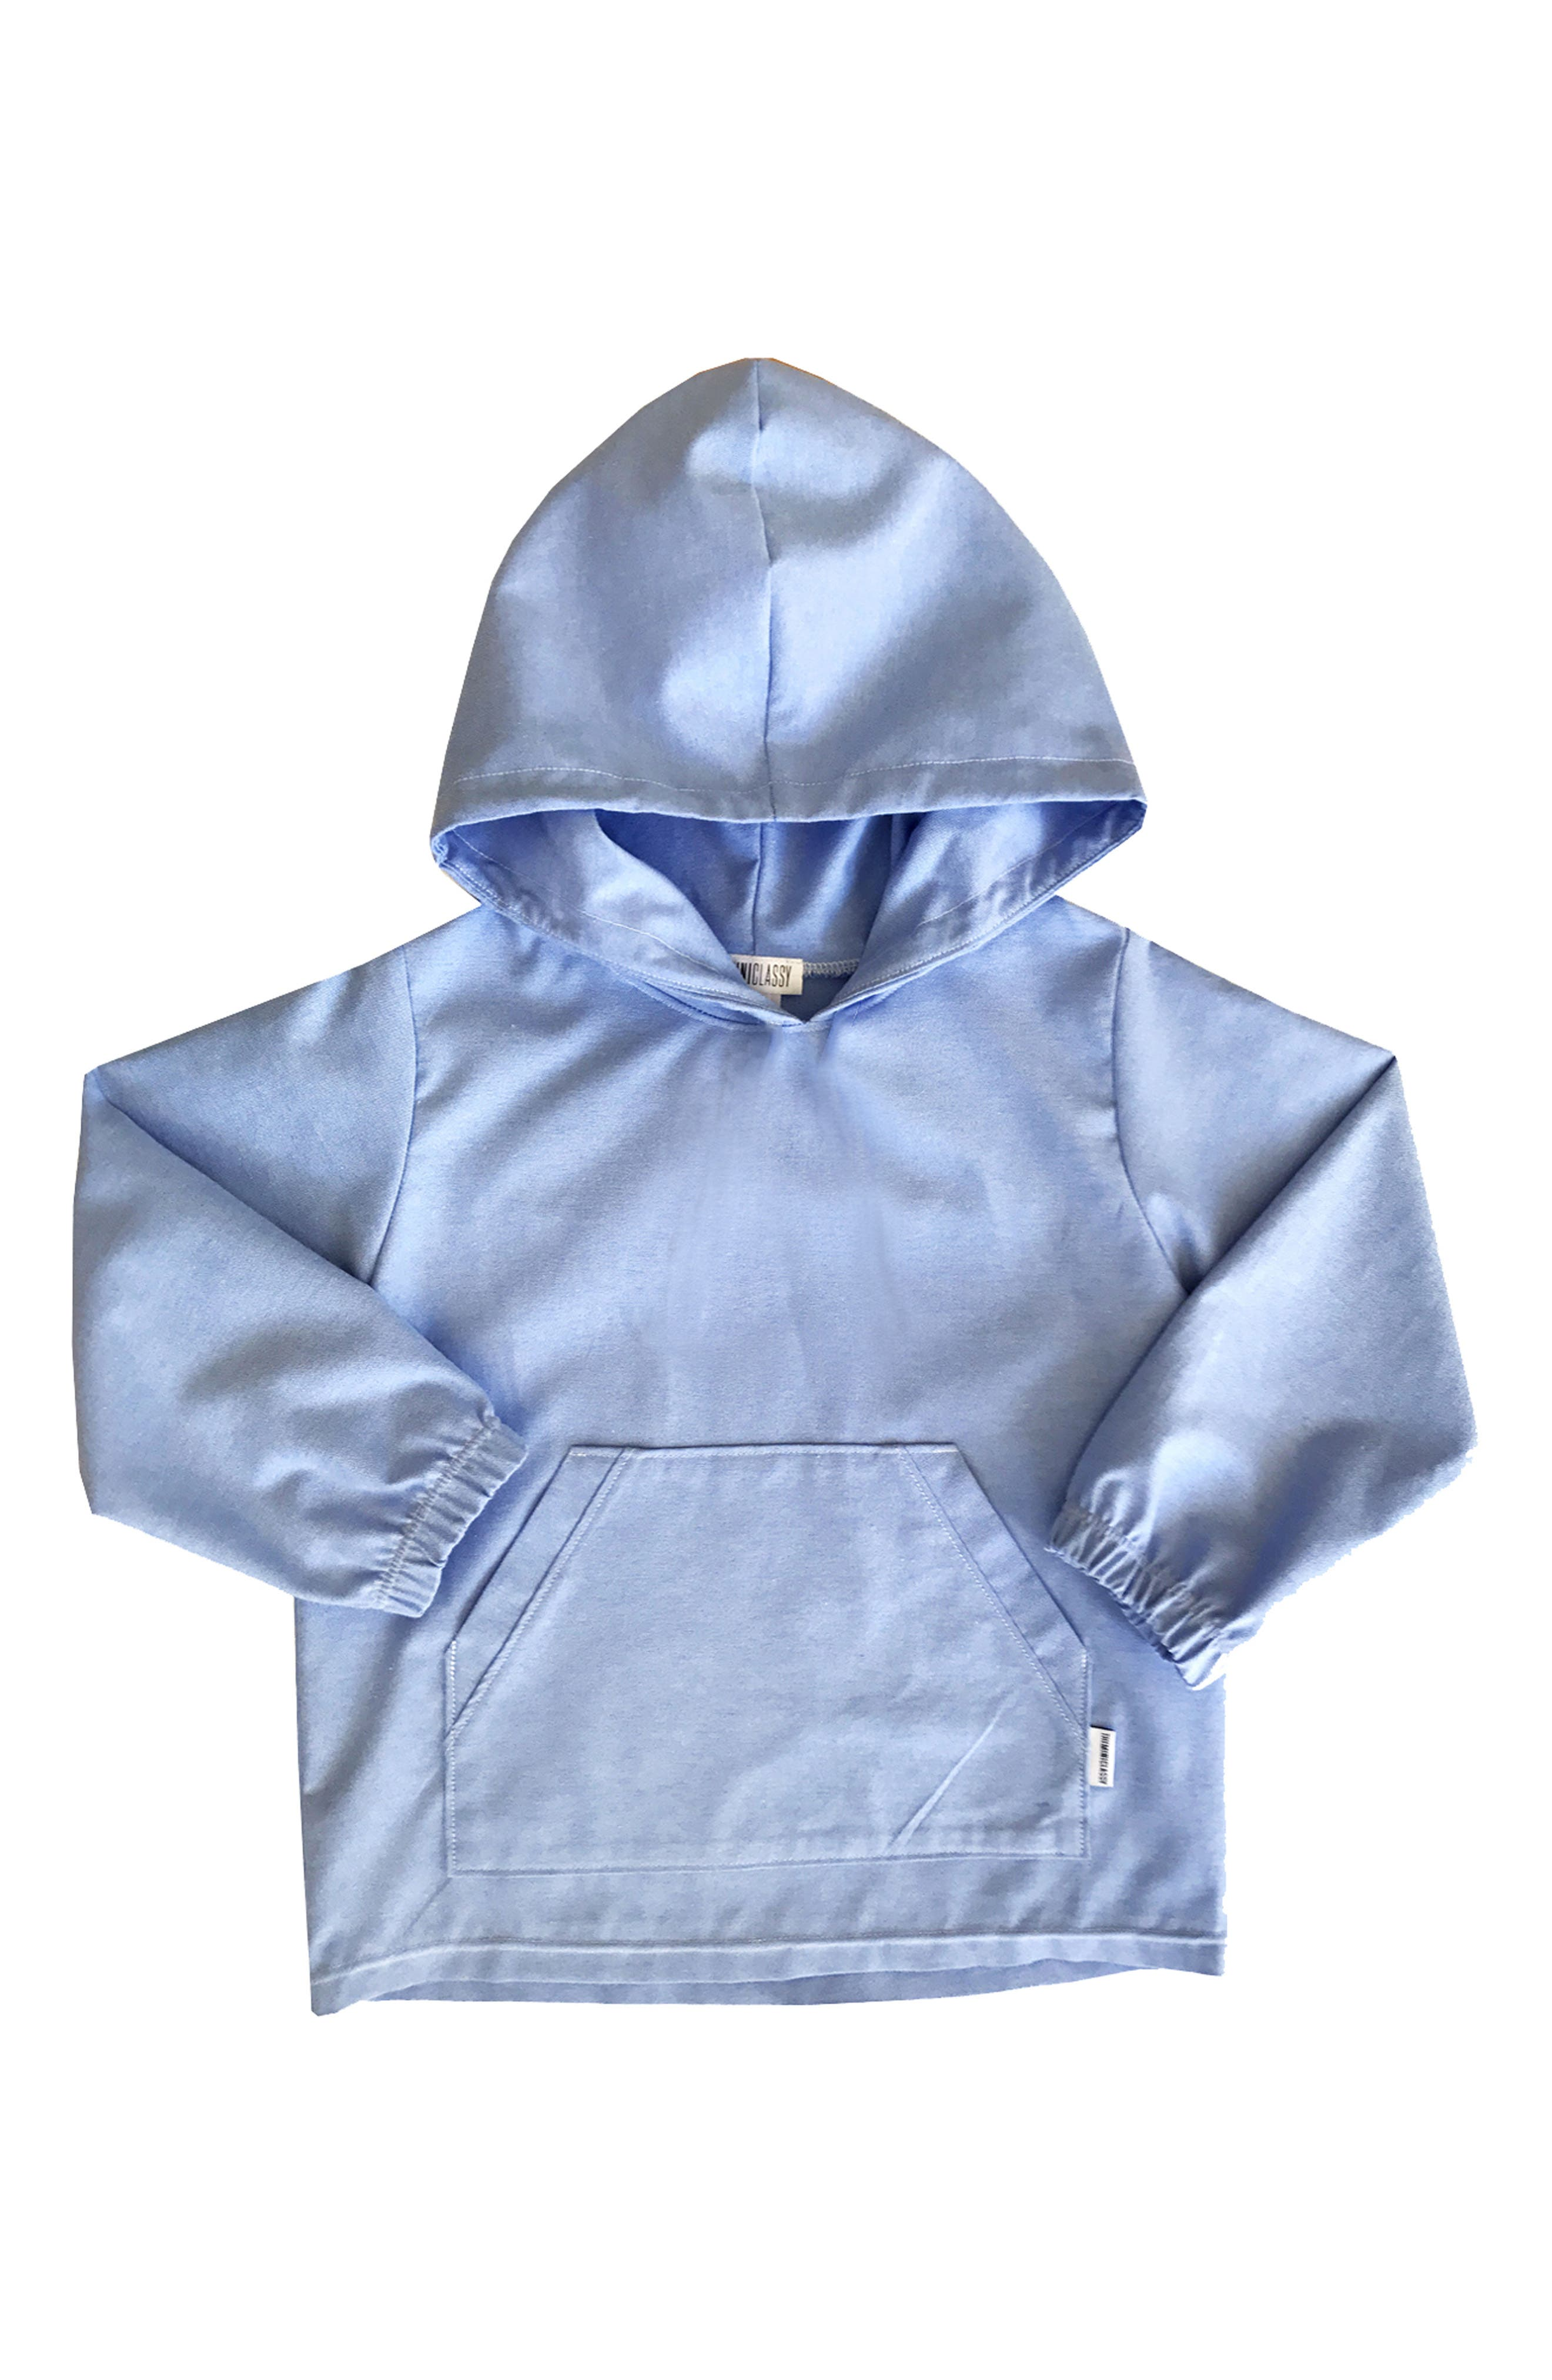 theMINIclassy Chambray Pullover Hoodie (Toddler Boys & Little Boys)